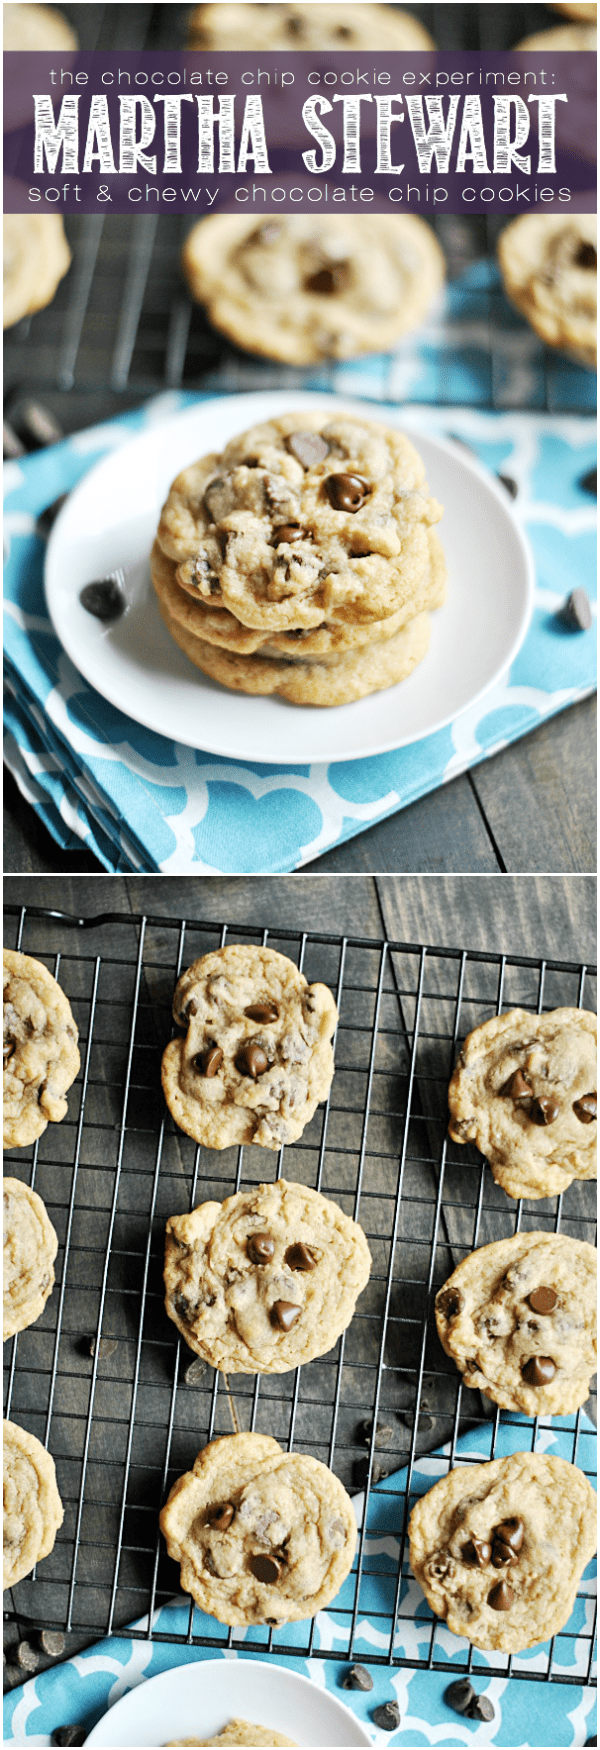 http://www.somethingswanky.com/chocolate-chip-cookie-experiment-3-martha-stewart/